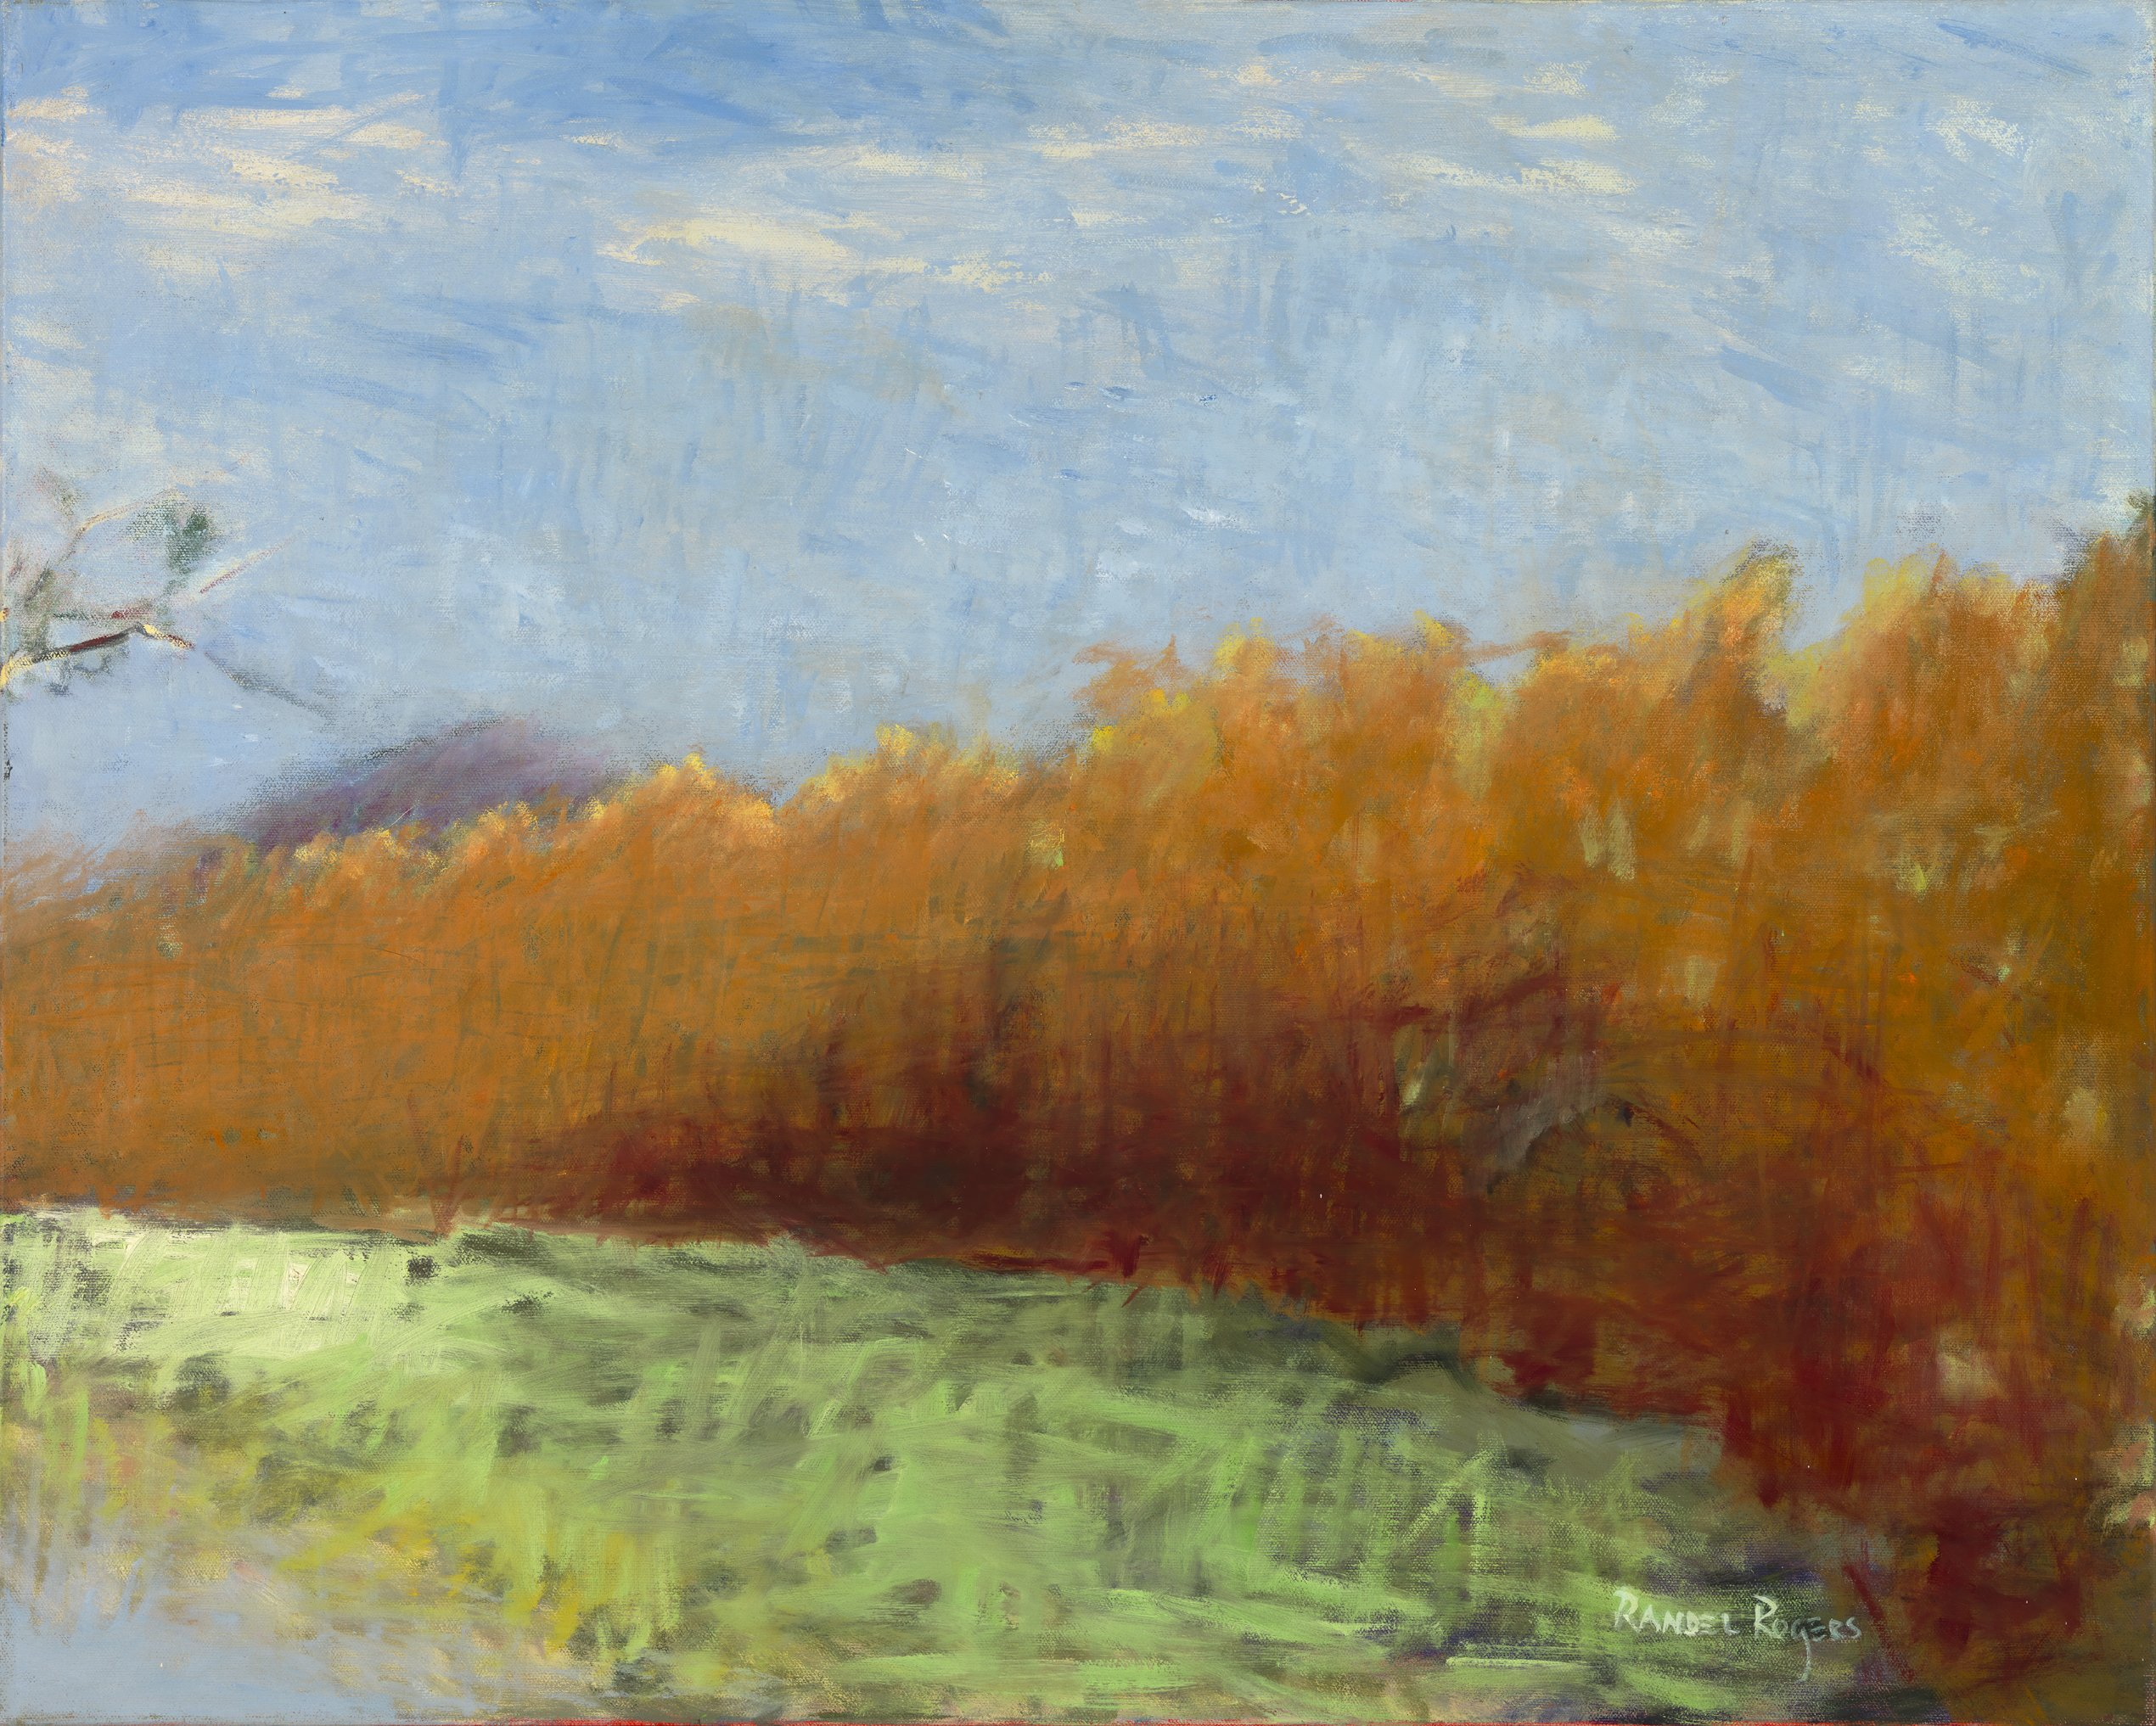 Randel Rogers; Conservancy Brushwood, 2013, Original Other, 36 x 24 inches. Artwork description: 241 Orange. Blue. Green. A sweep of colorful foliage at the edge of Conservancy land...